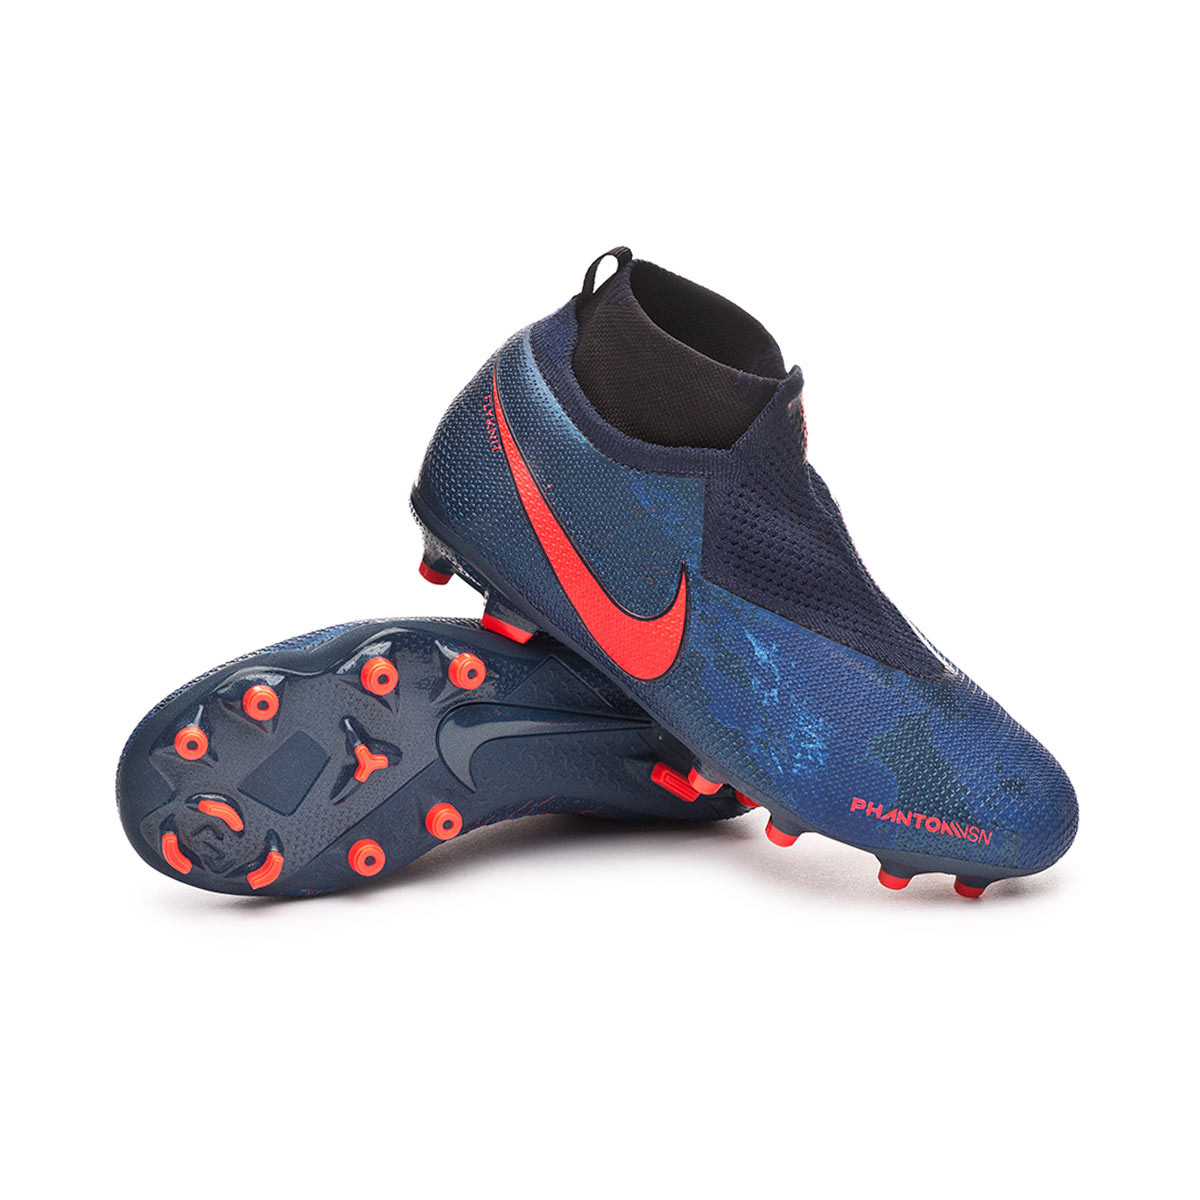 faa8e2989a0 Football Boots Nike Phantom Vision Elite DF FG MG Niño Obsidian ...